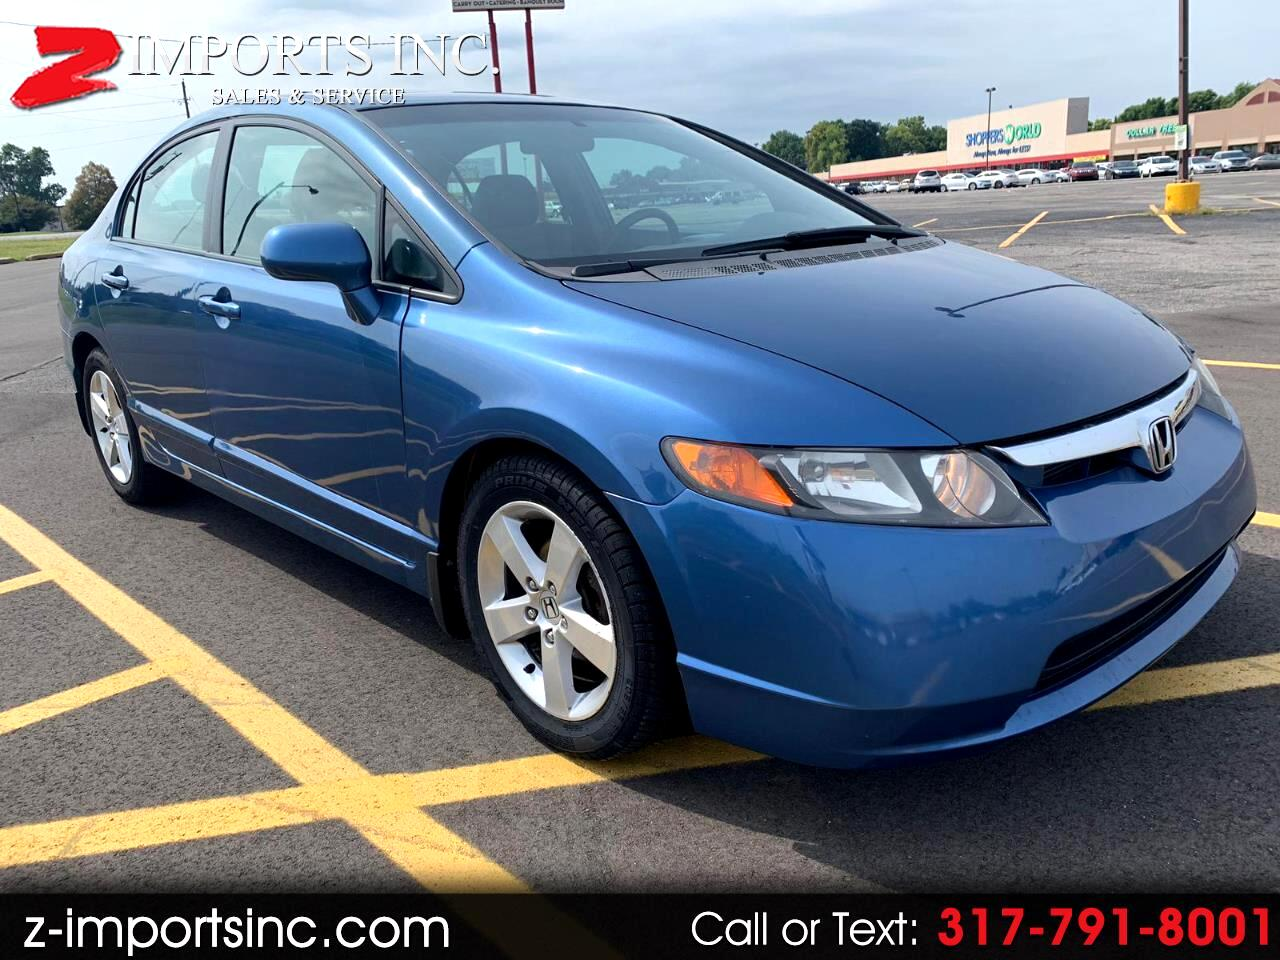 Cheap Cars For Sale in Indianapolis, IN - CarGurus